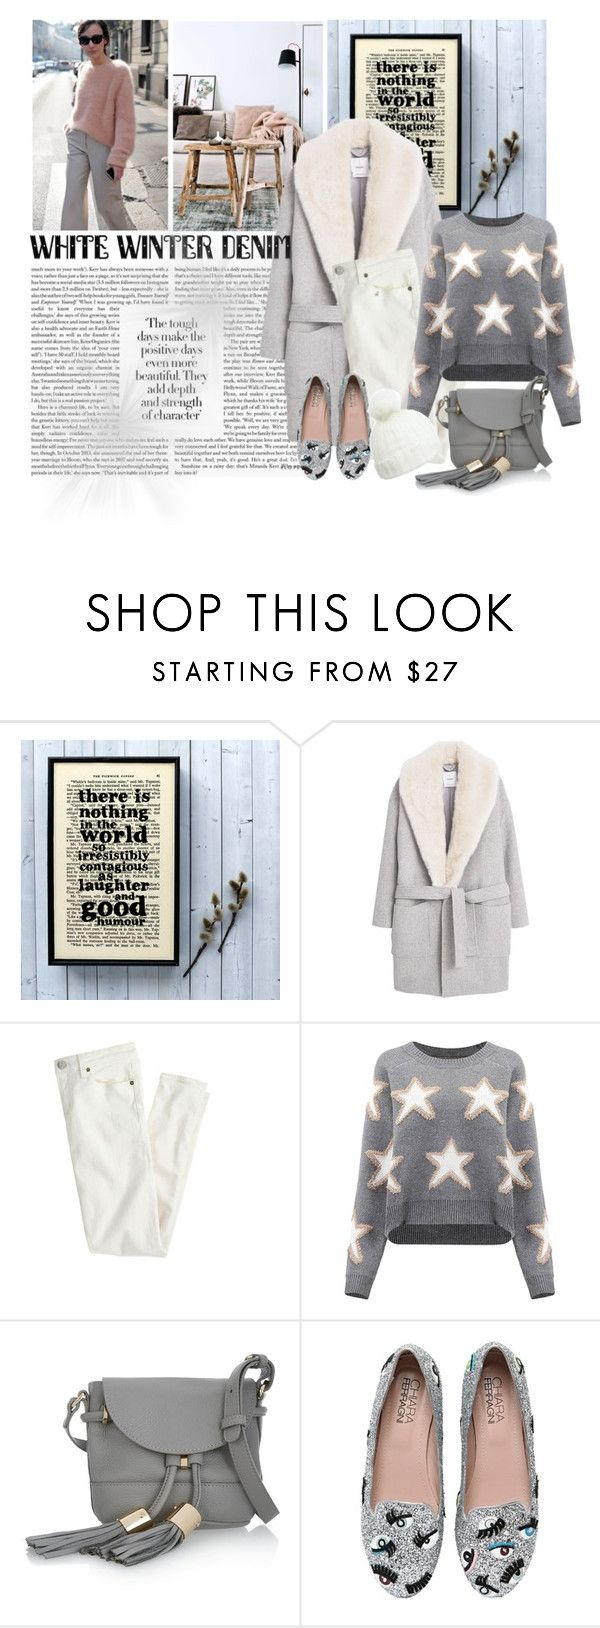 """""""White Winter Denim trend"""" by cool-cute ❤ liked on Polyvore featuring MANGO, J.Crew, See by Chloé, Chiara Ferragni, Miss Selfridge and whitewinterdenim"""